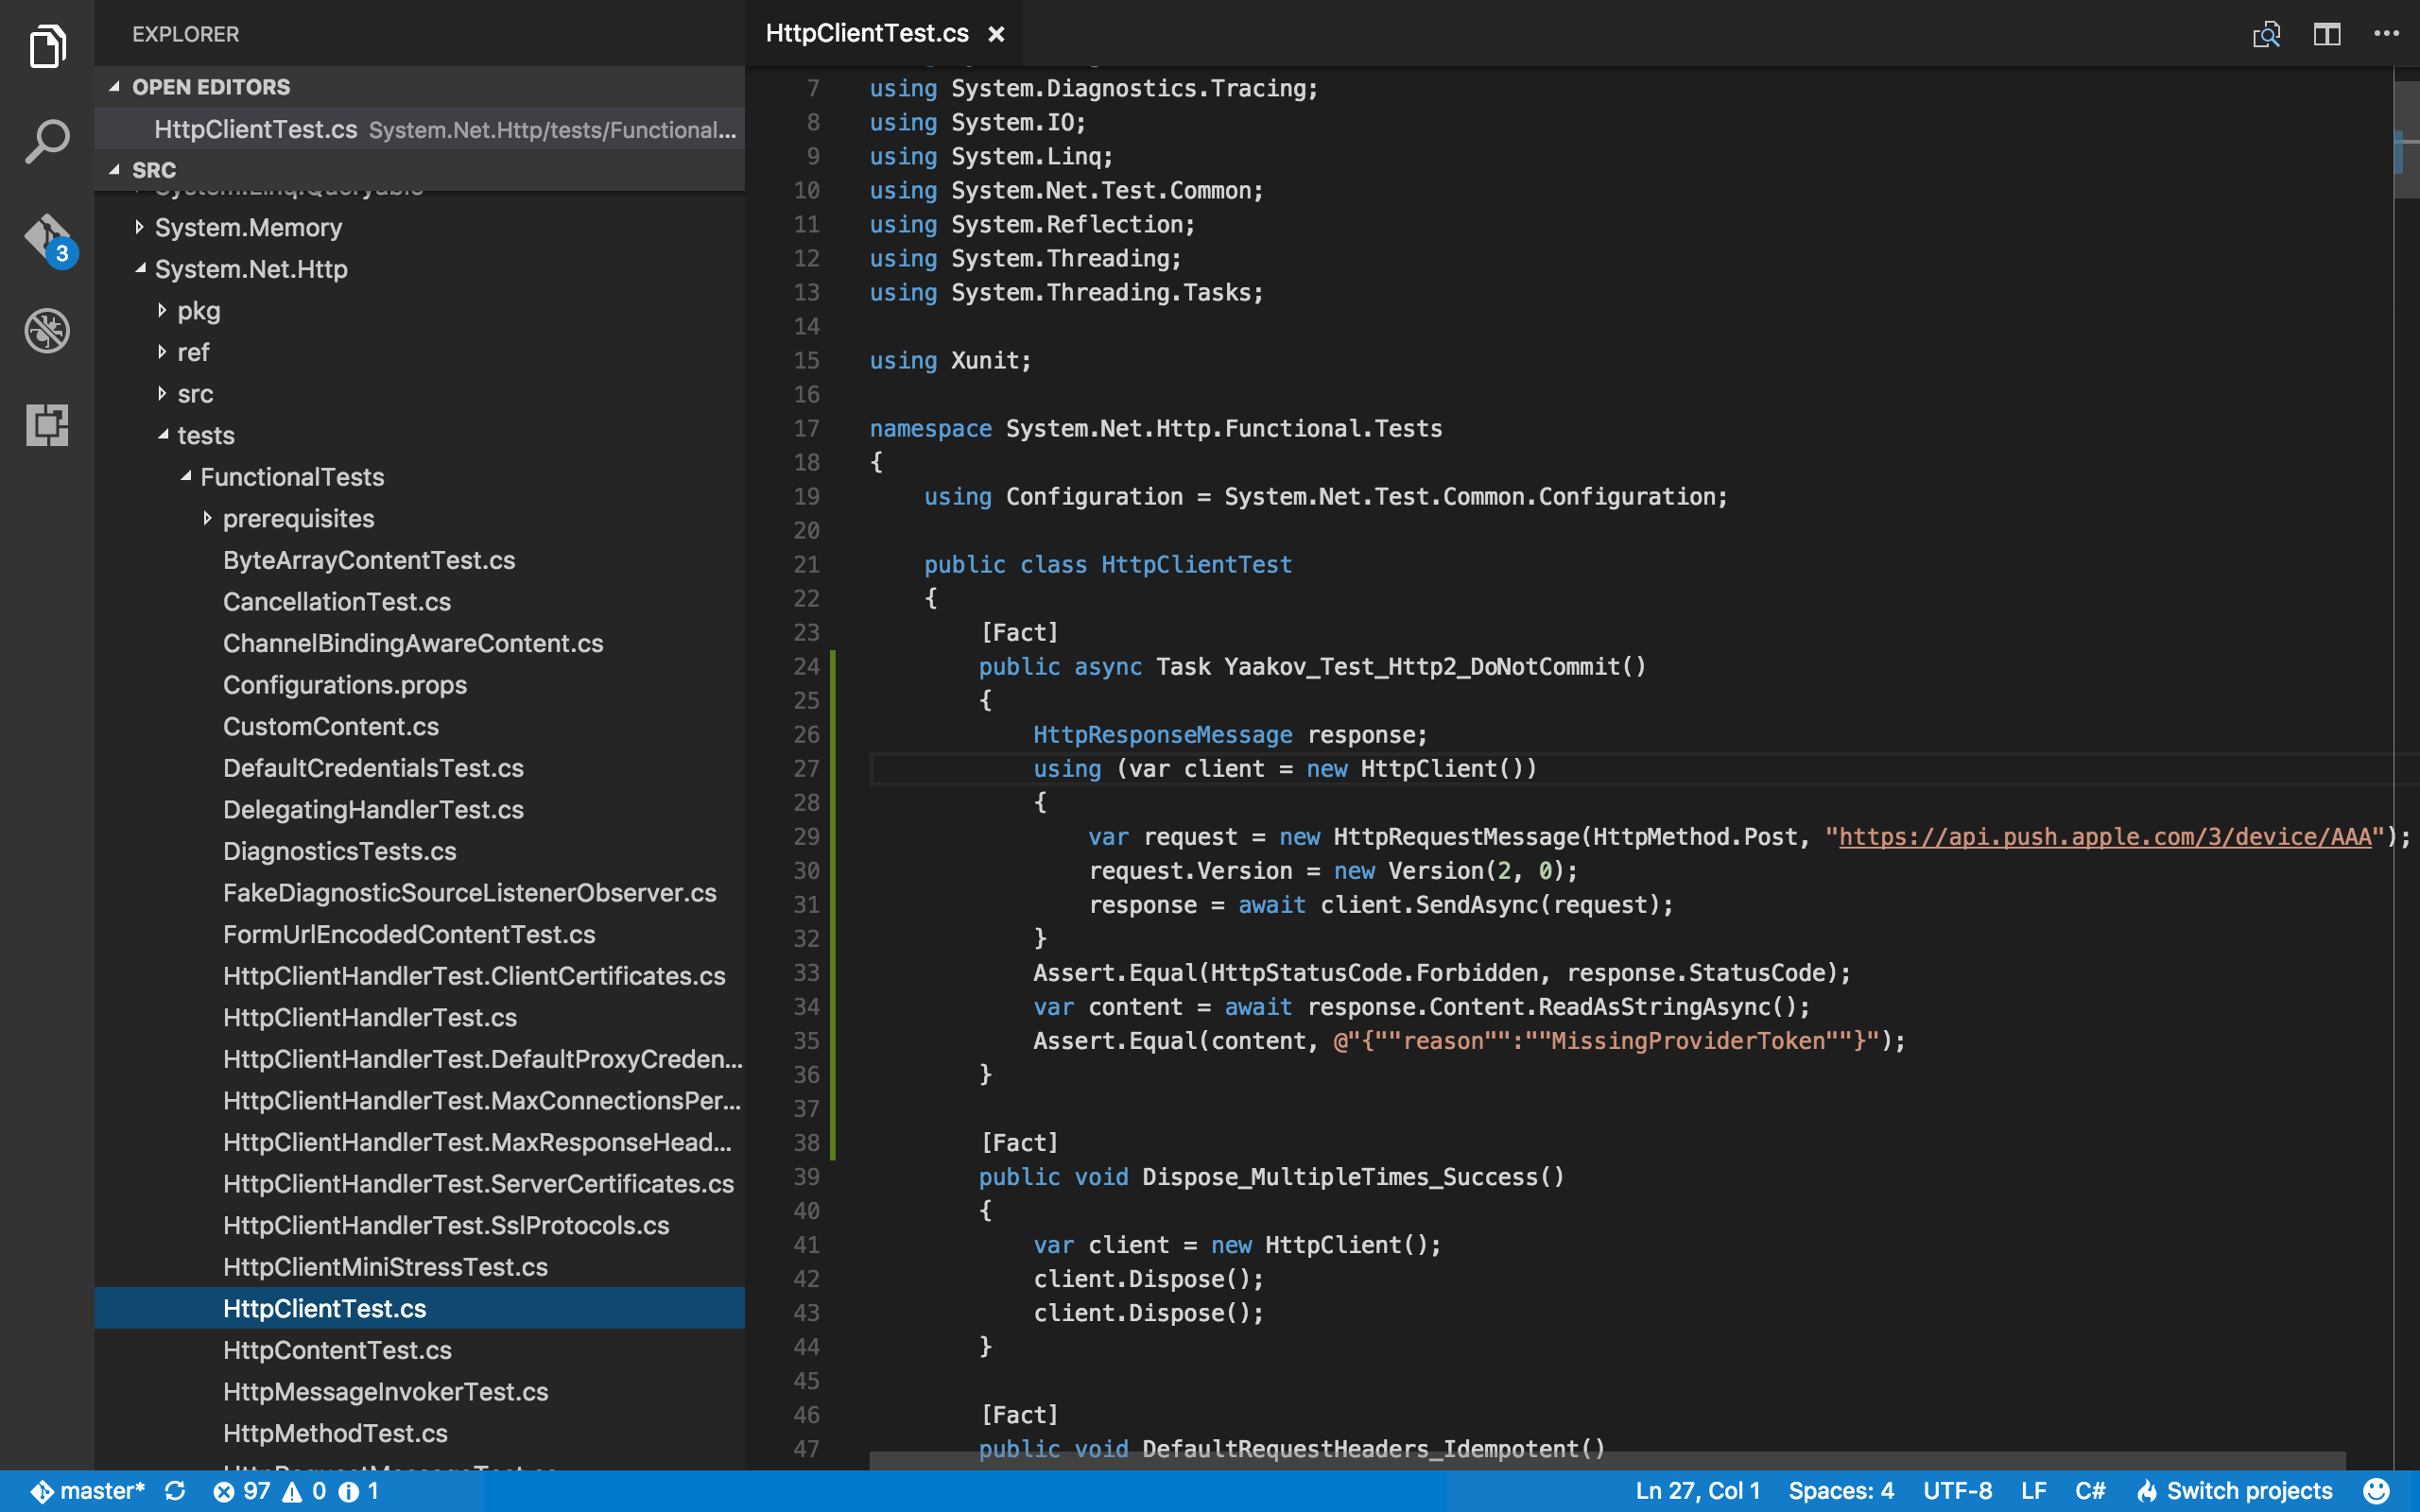 Visual Studio Code, with a new unit test written.